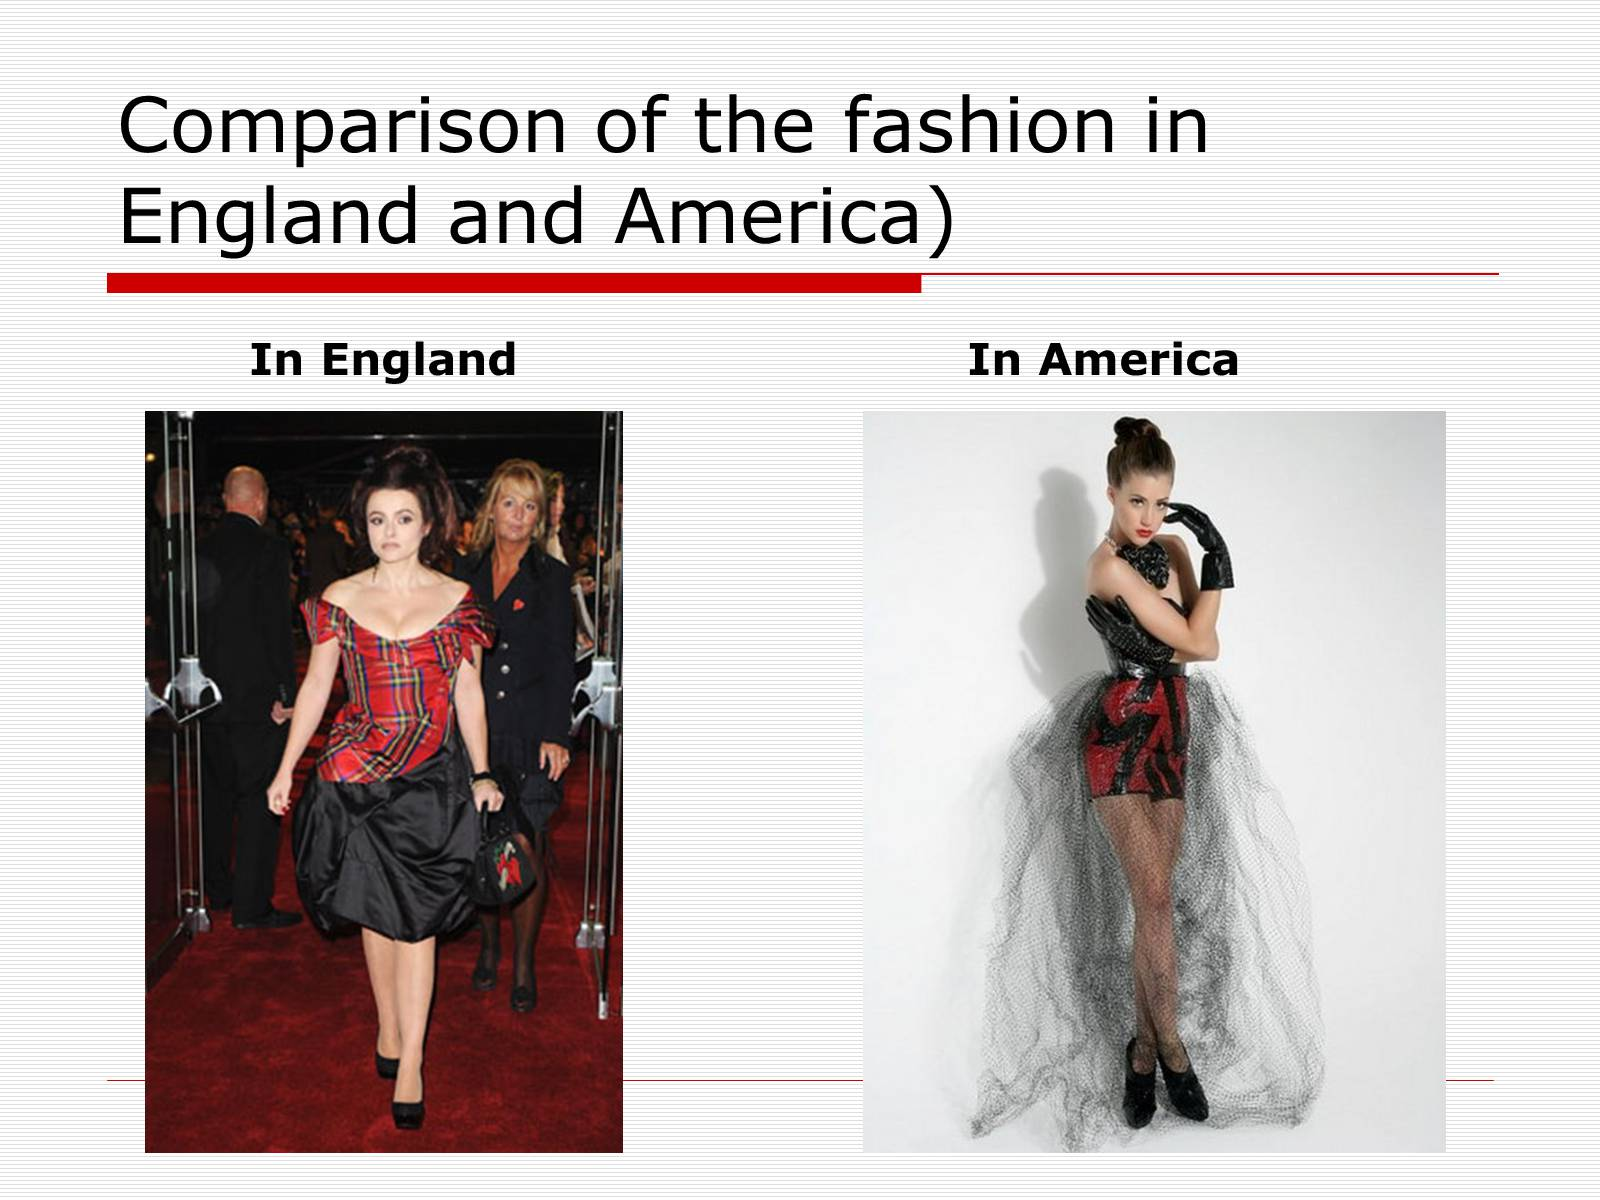 Презентація на тему «Comparison of the fashion in England and America» - Слайд #33